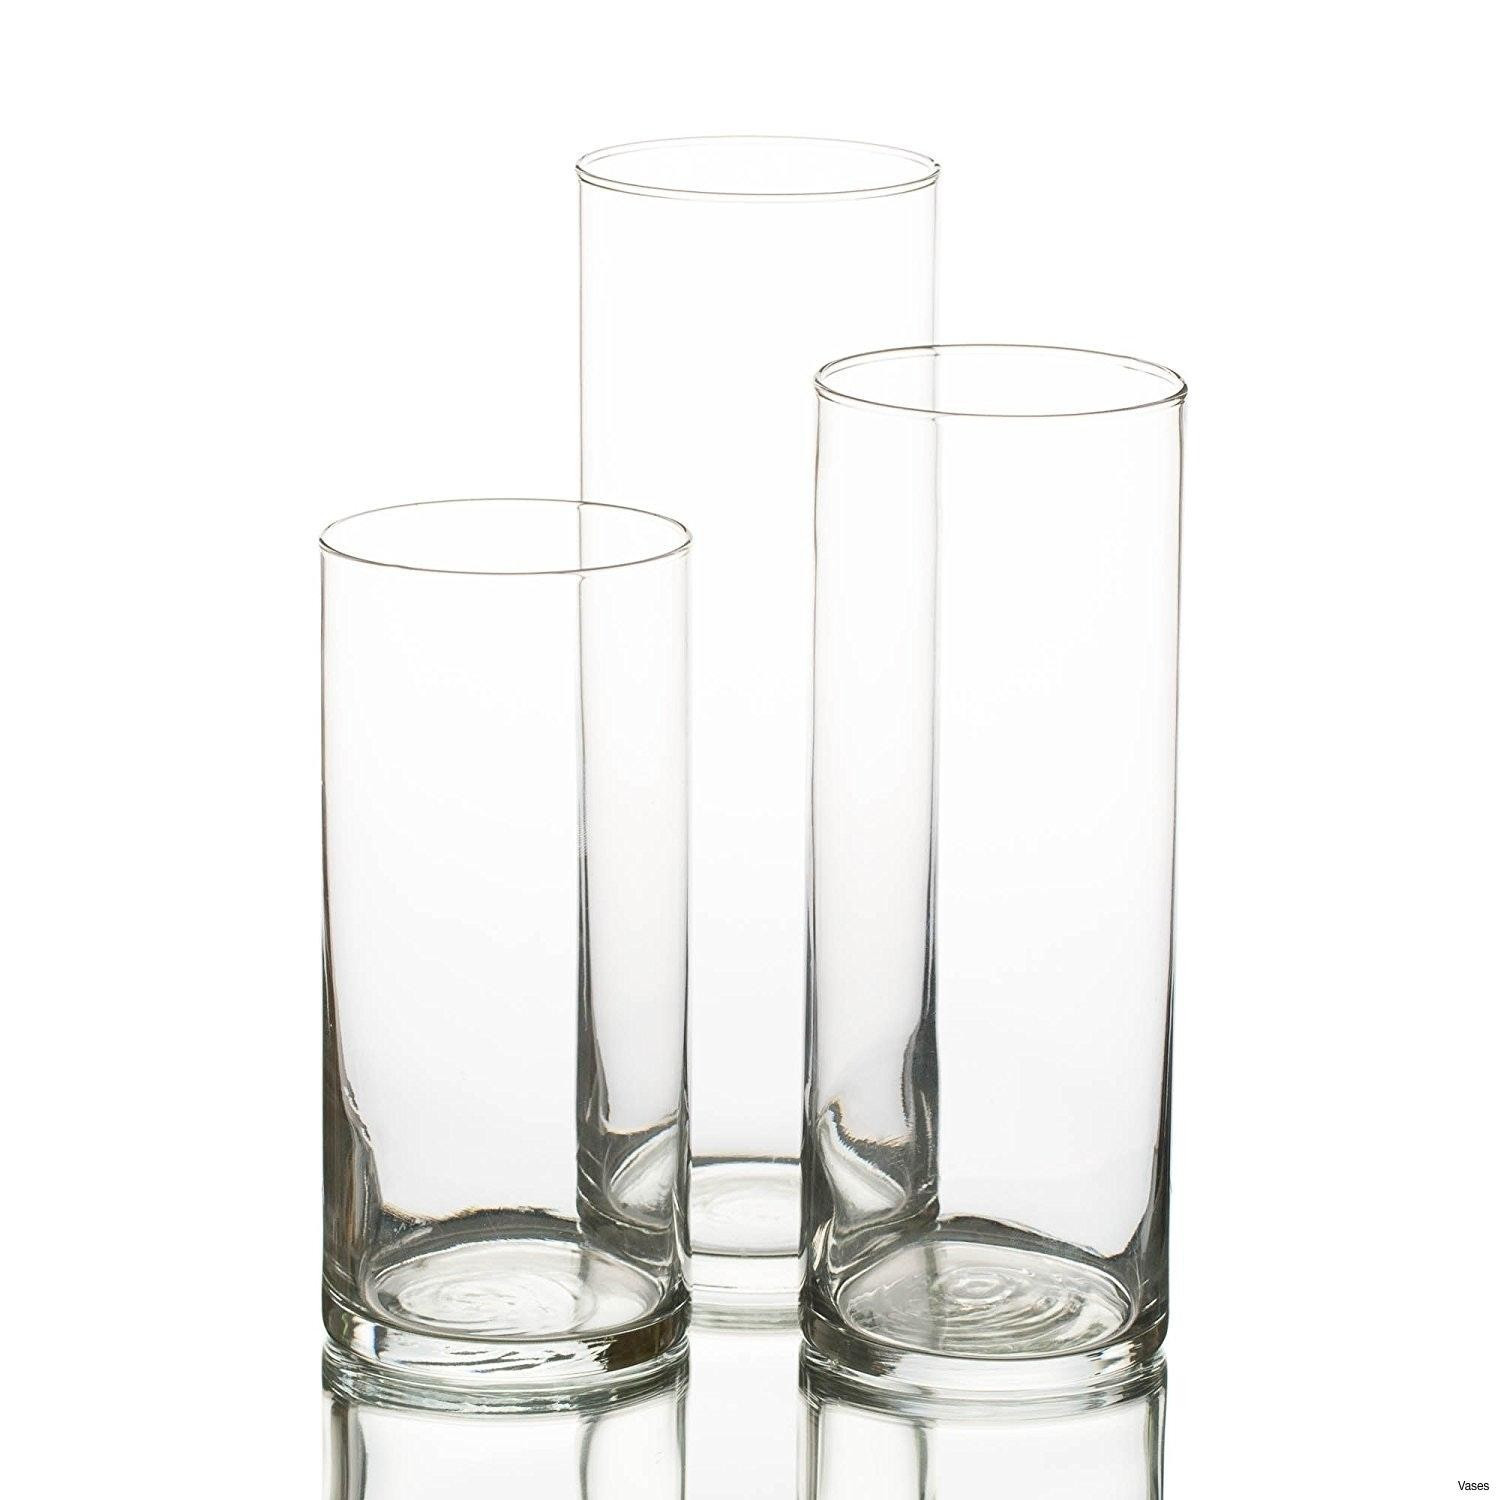 cheap plastic vases of outdoor dining table throughout living room glass vases new vases tall silver vaseh skinny vasei 0d plastic floor full size